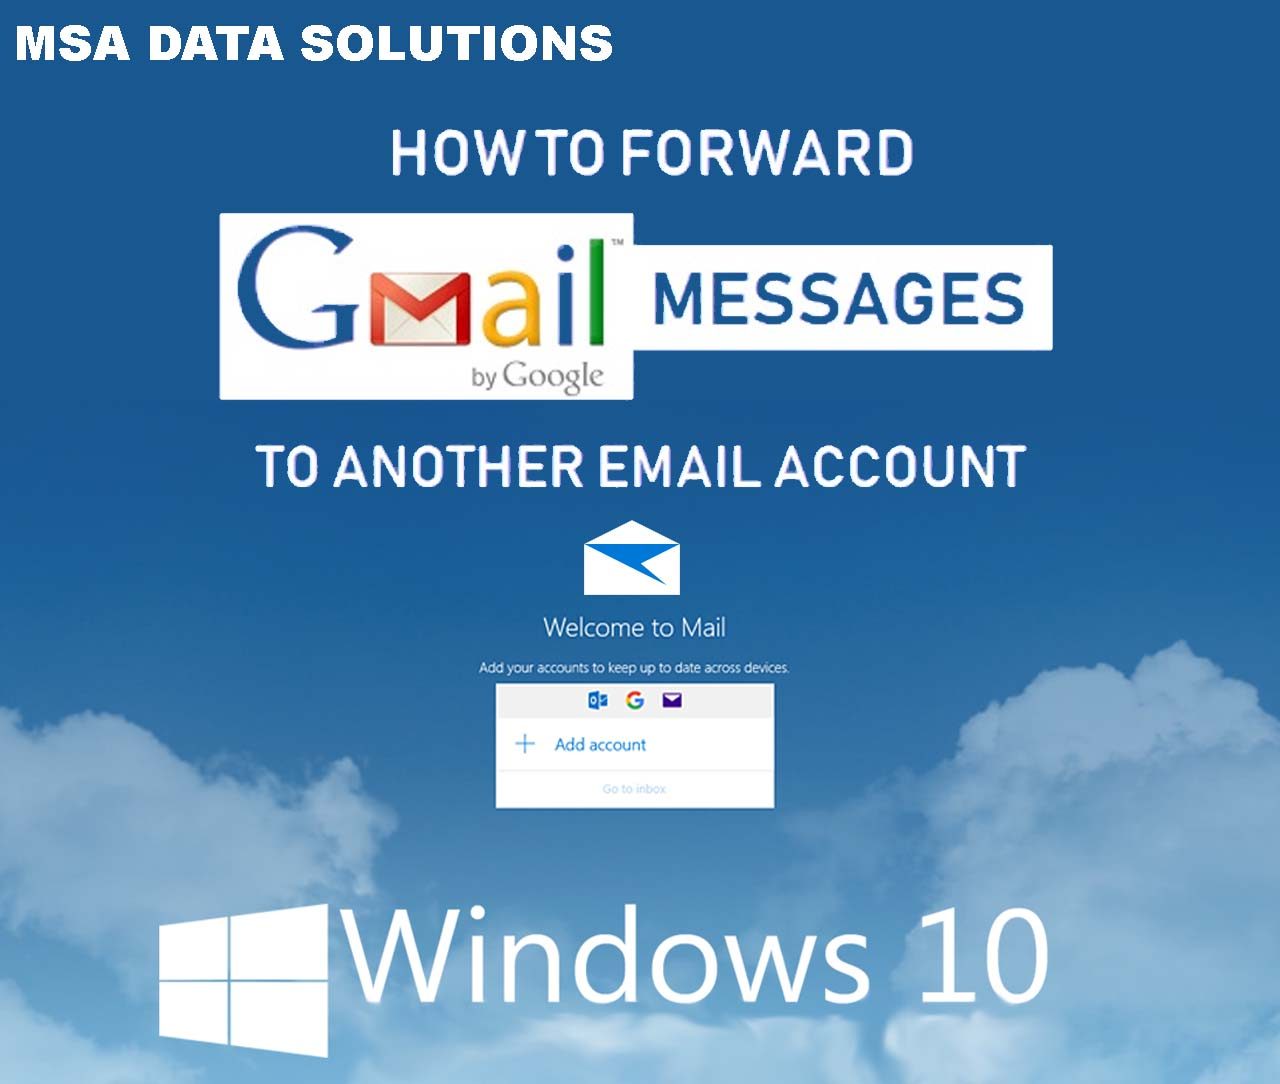 Forwarding Gmail Messages to Another Email Address